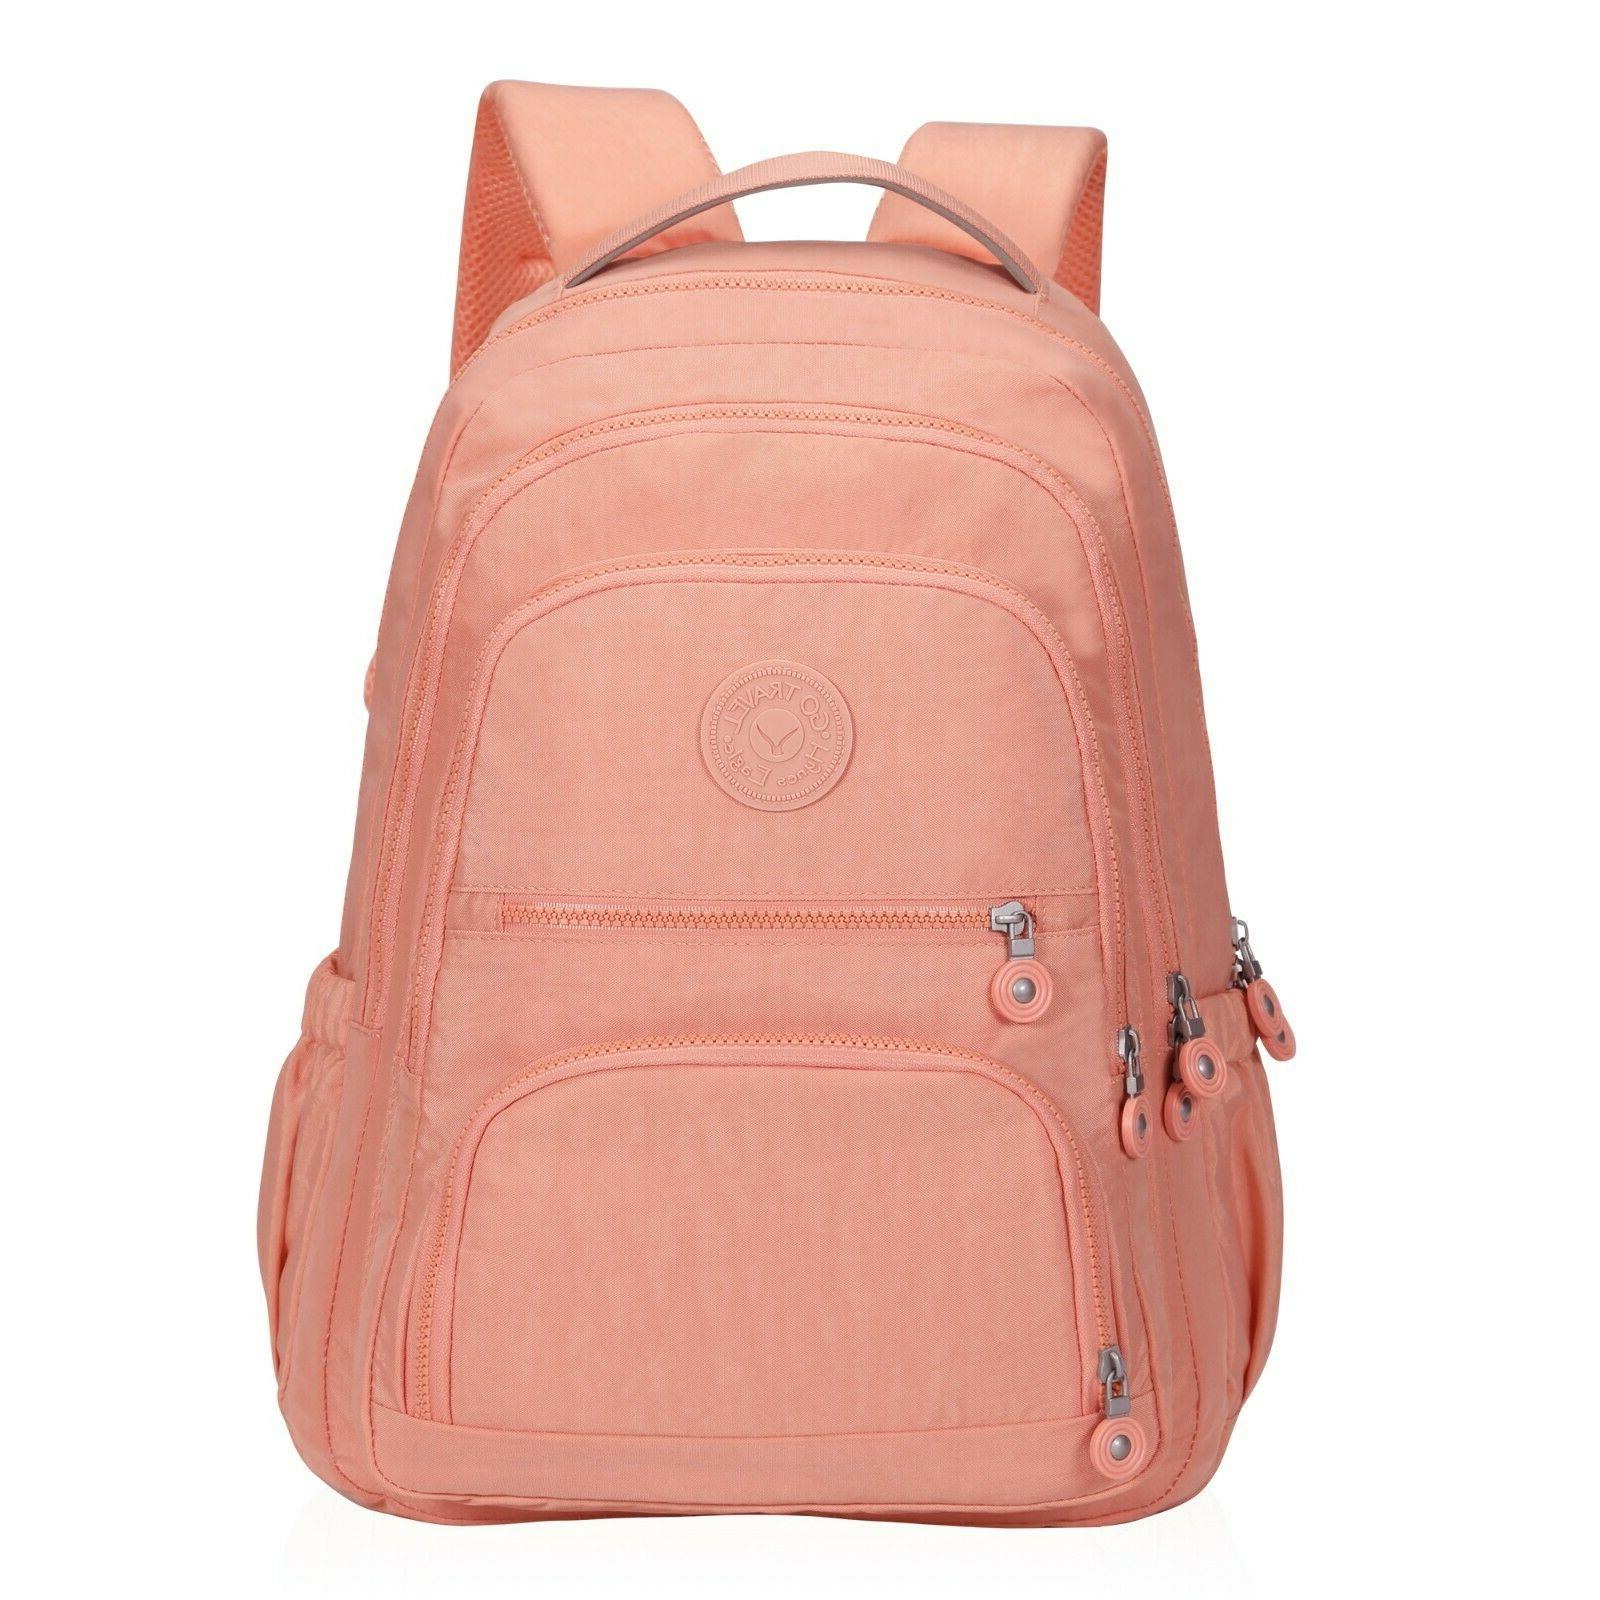 school backpack student casual daypack laptop fits